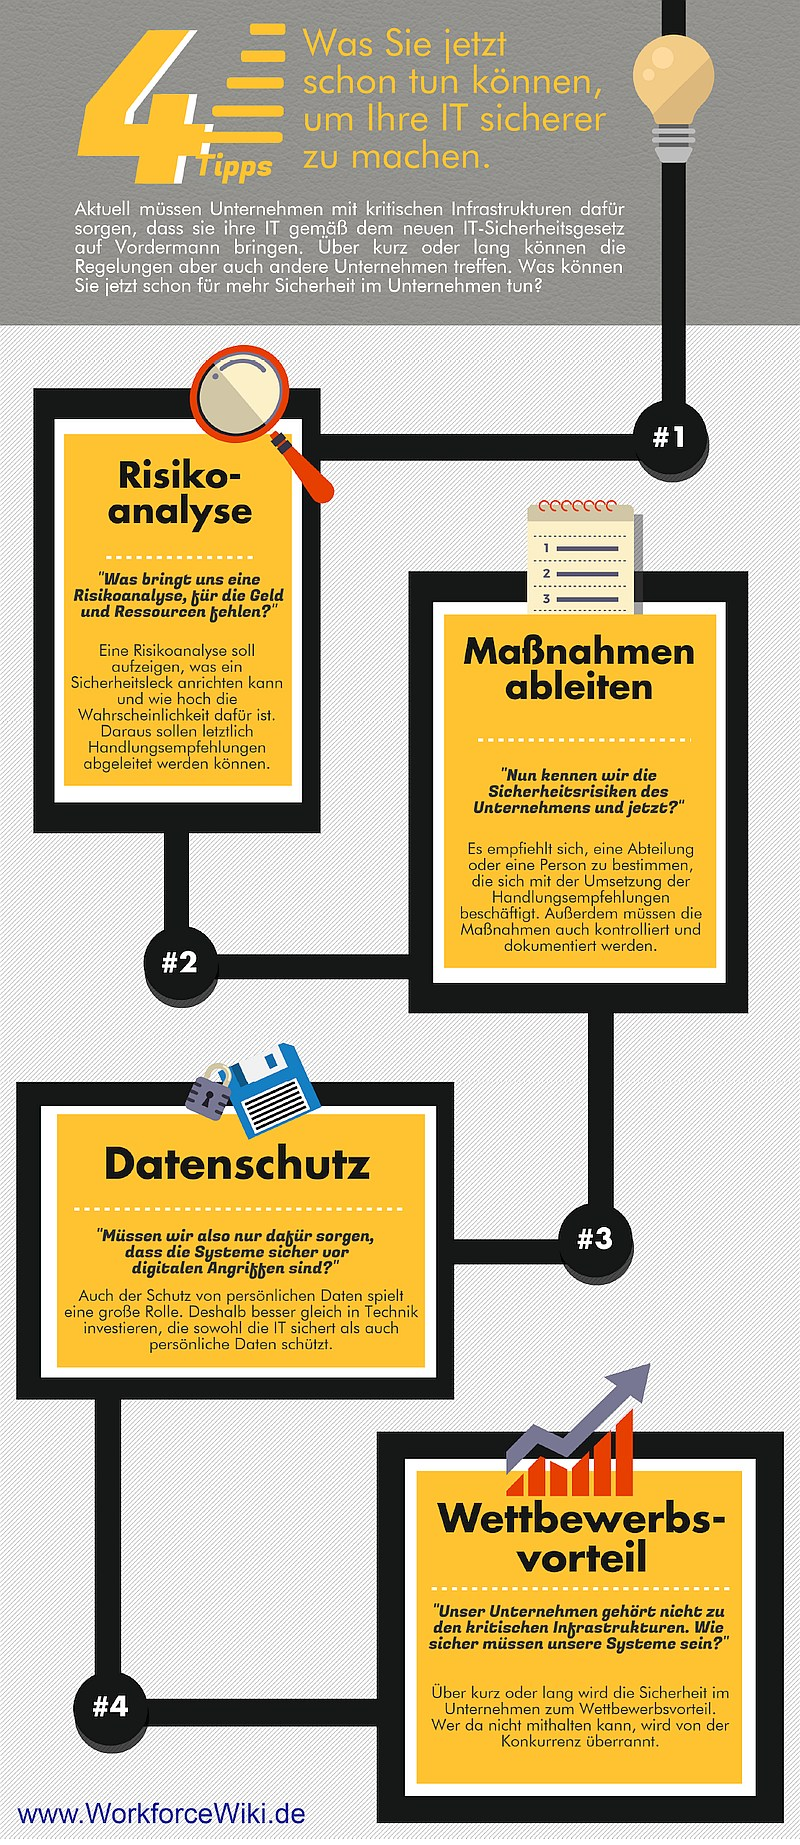 infografik workforce-wiki it-sicherheitsgesetz